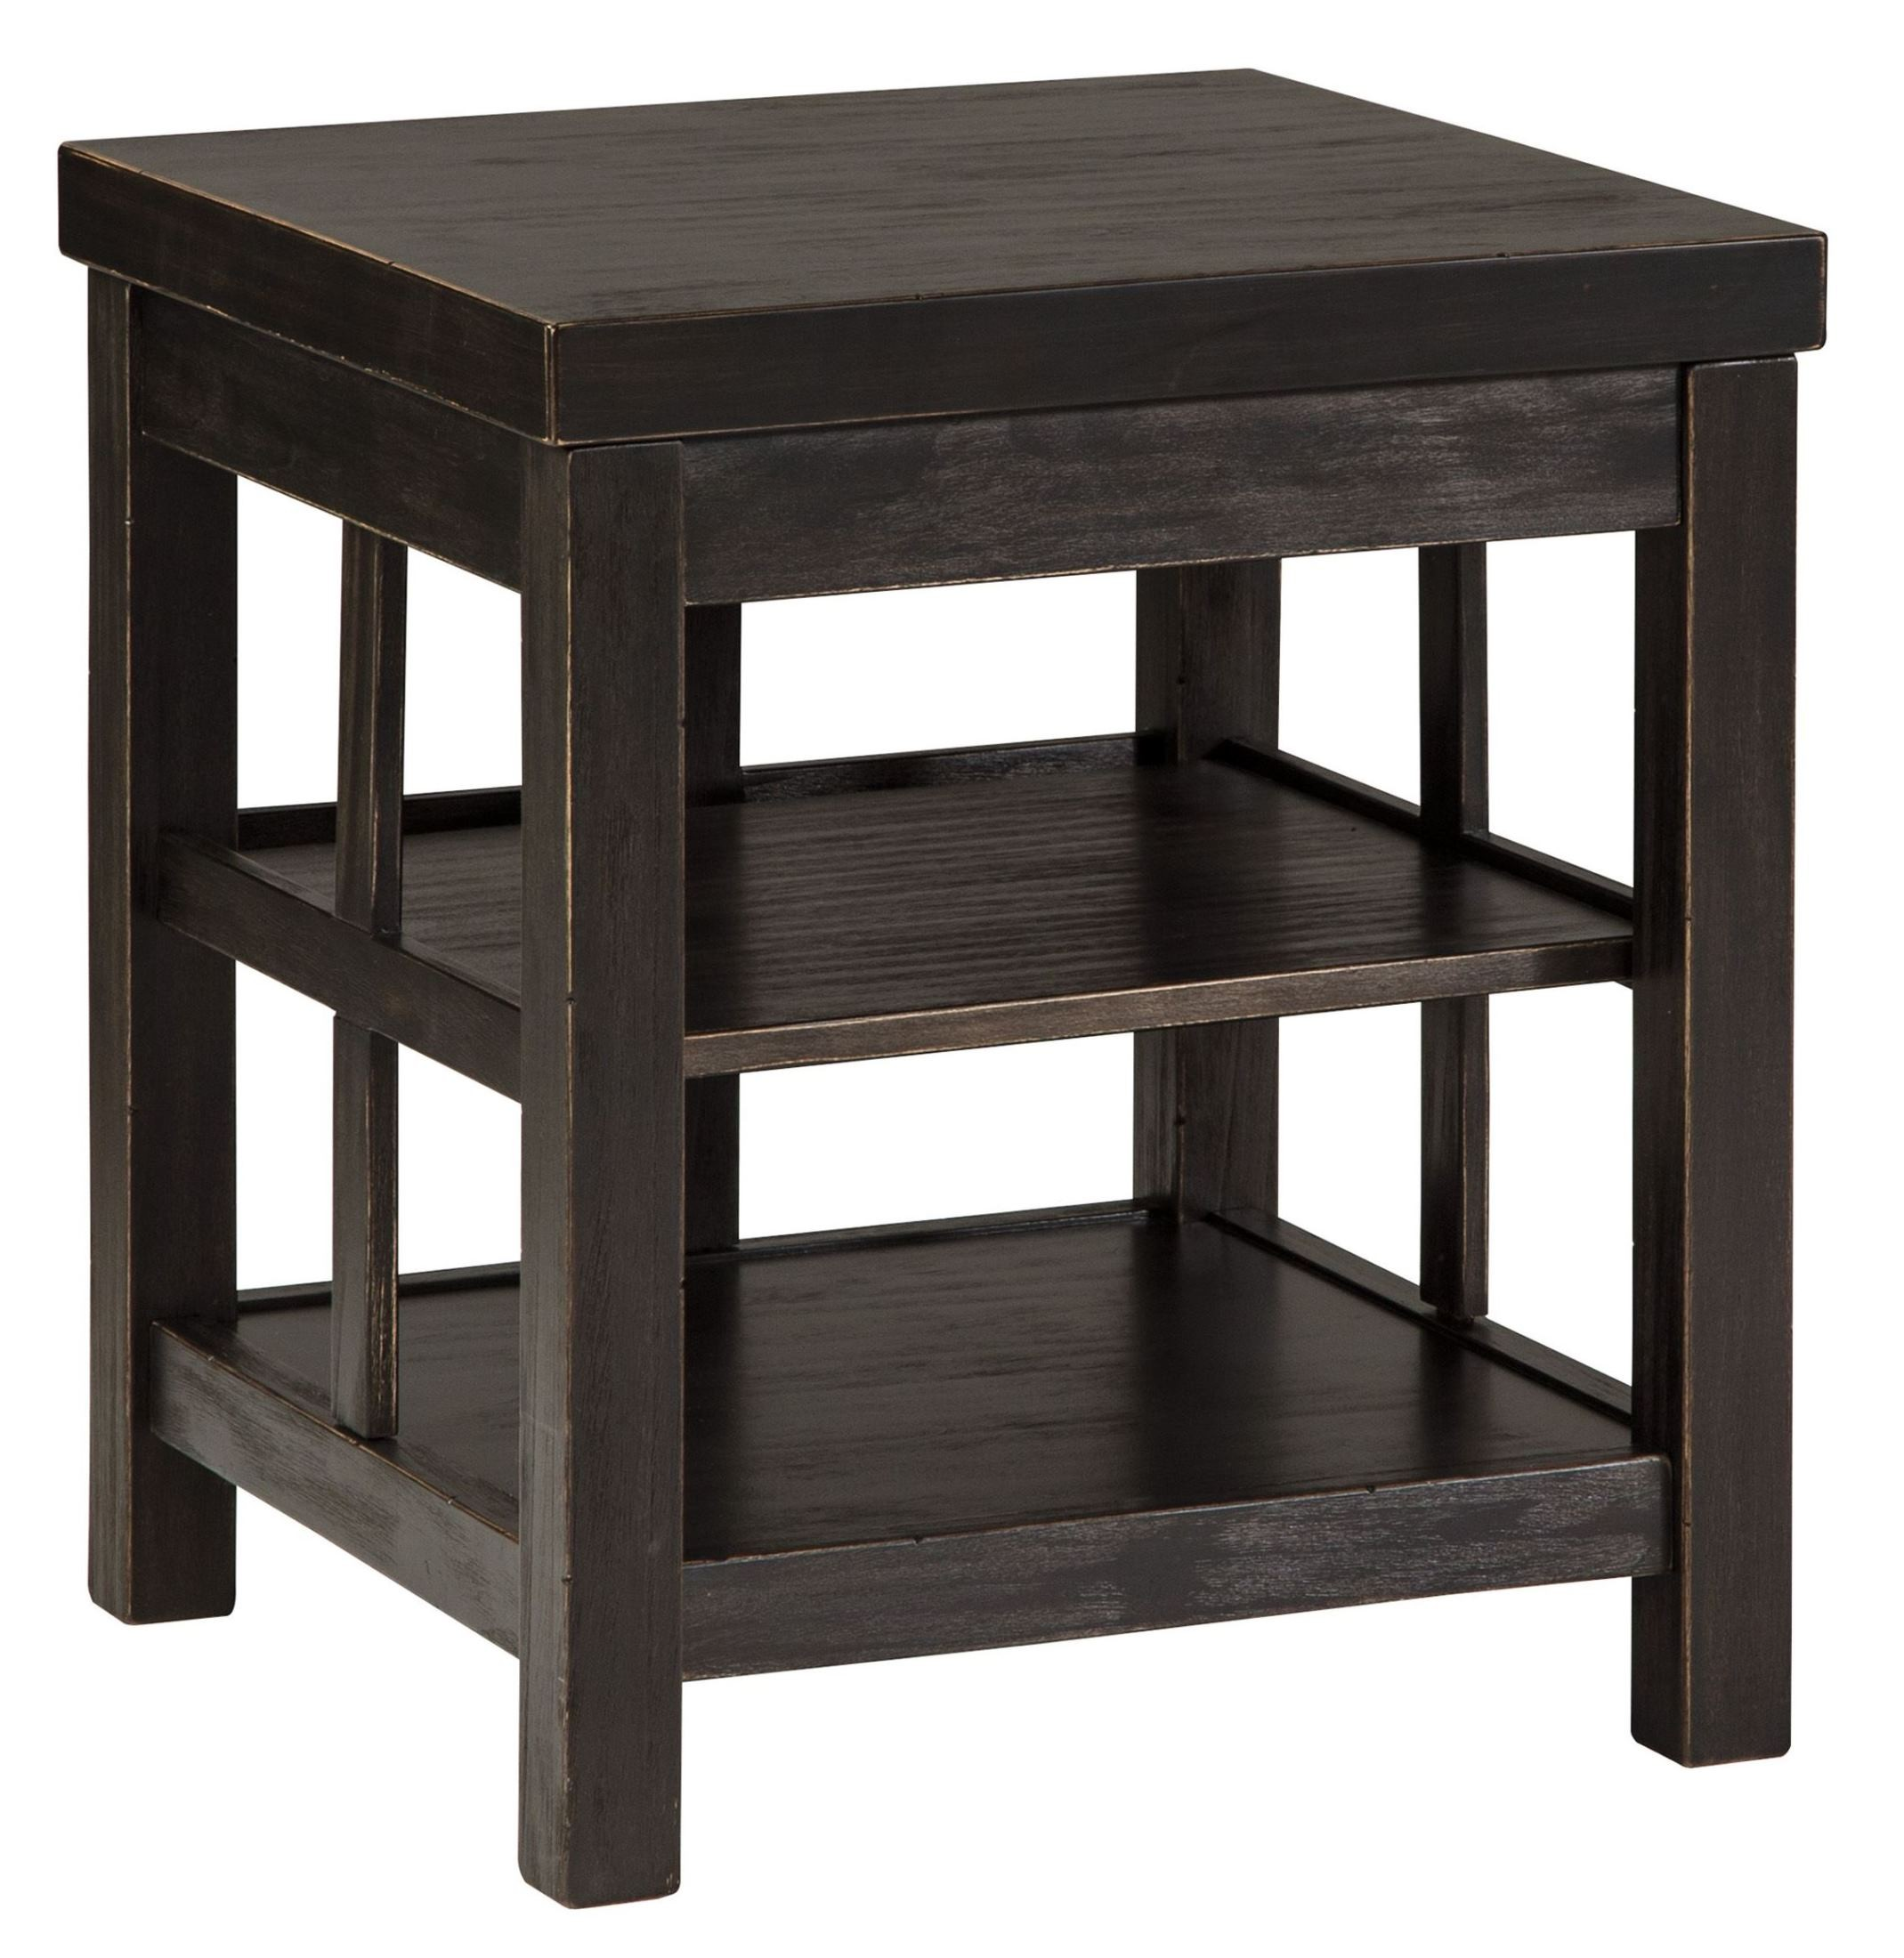 Gavelston vintage rub through black square end table from for Square end table